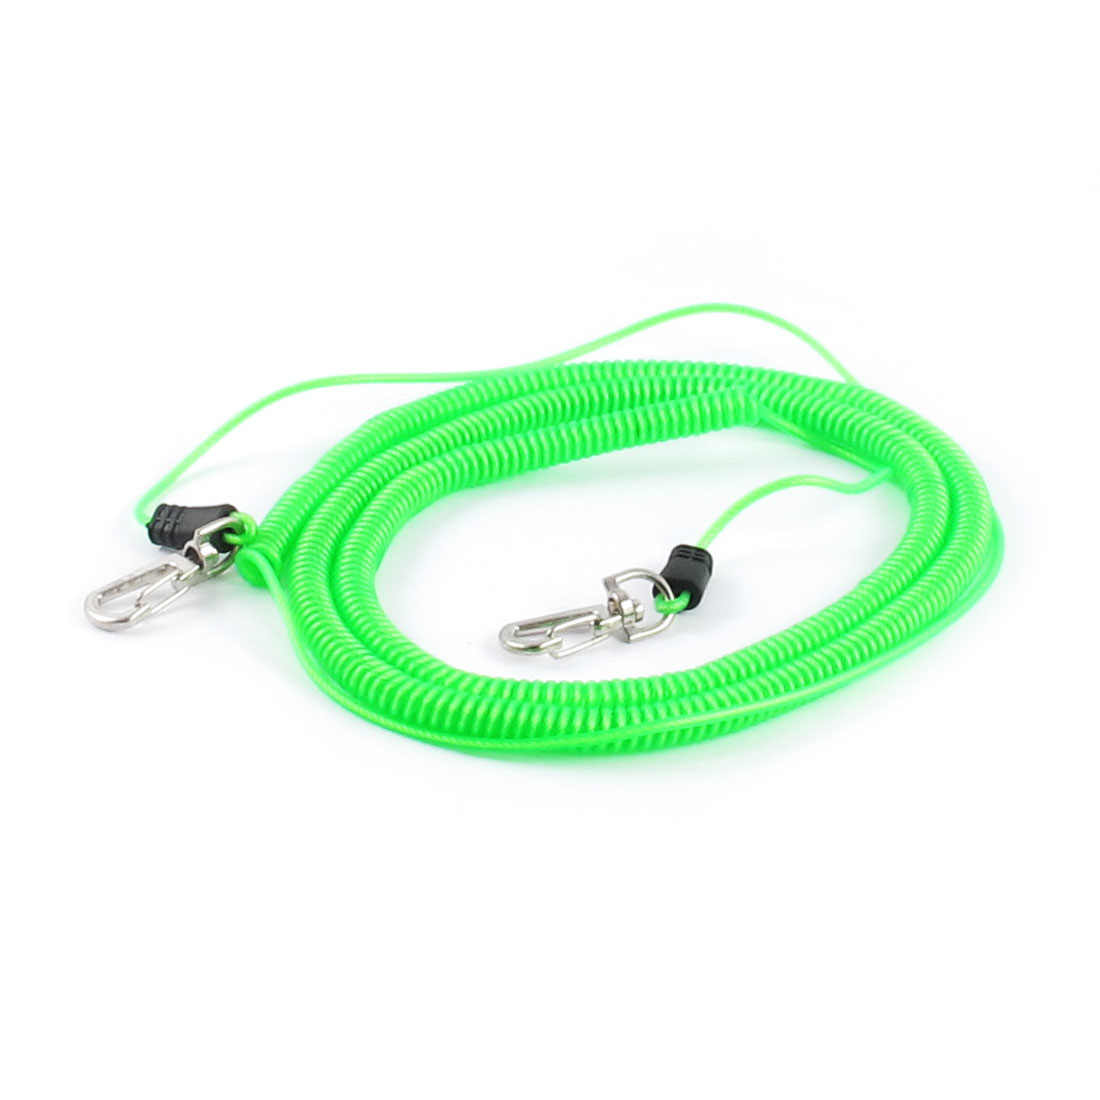 Fishing Rod Lobster Clasp Elastic Coiled Lanyard Rope Cord Green 10M 33Ft